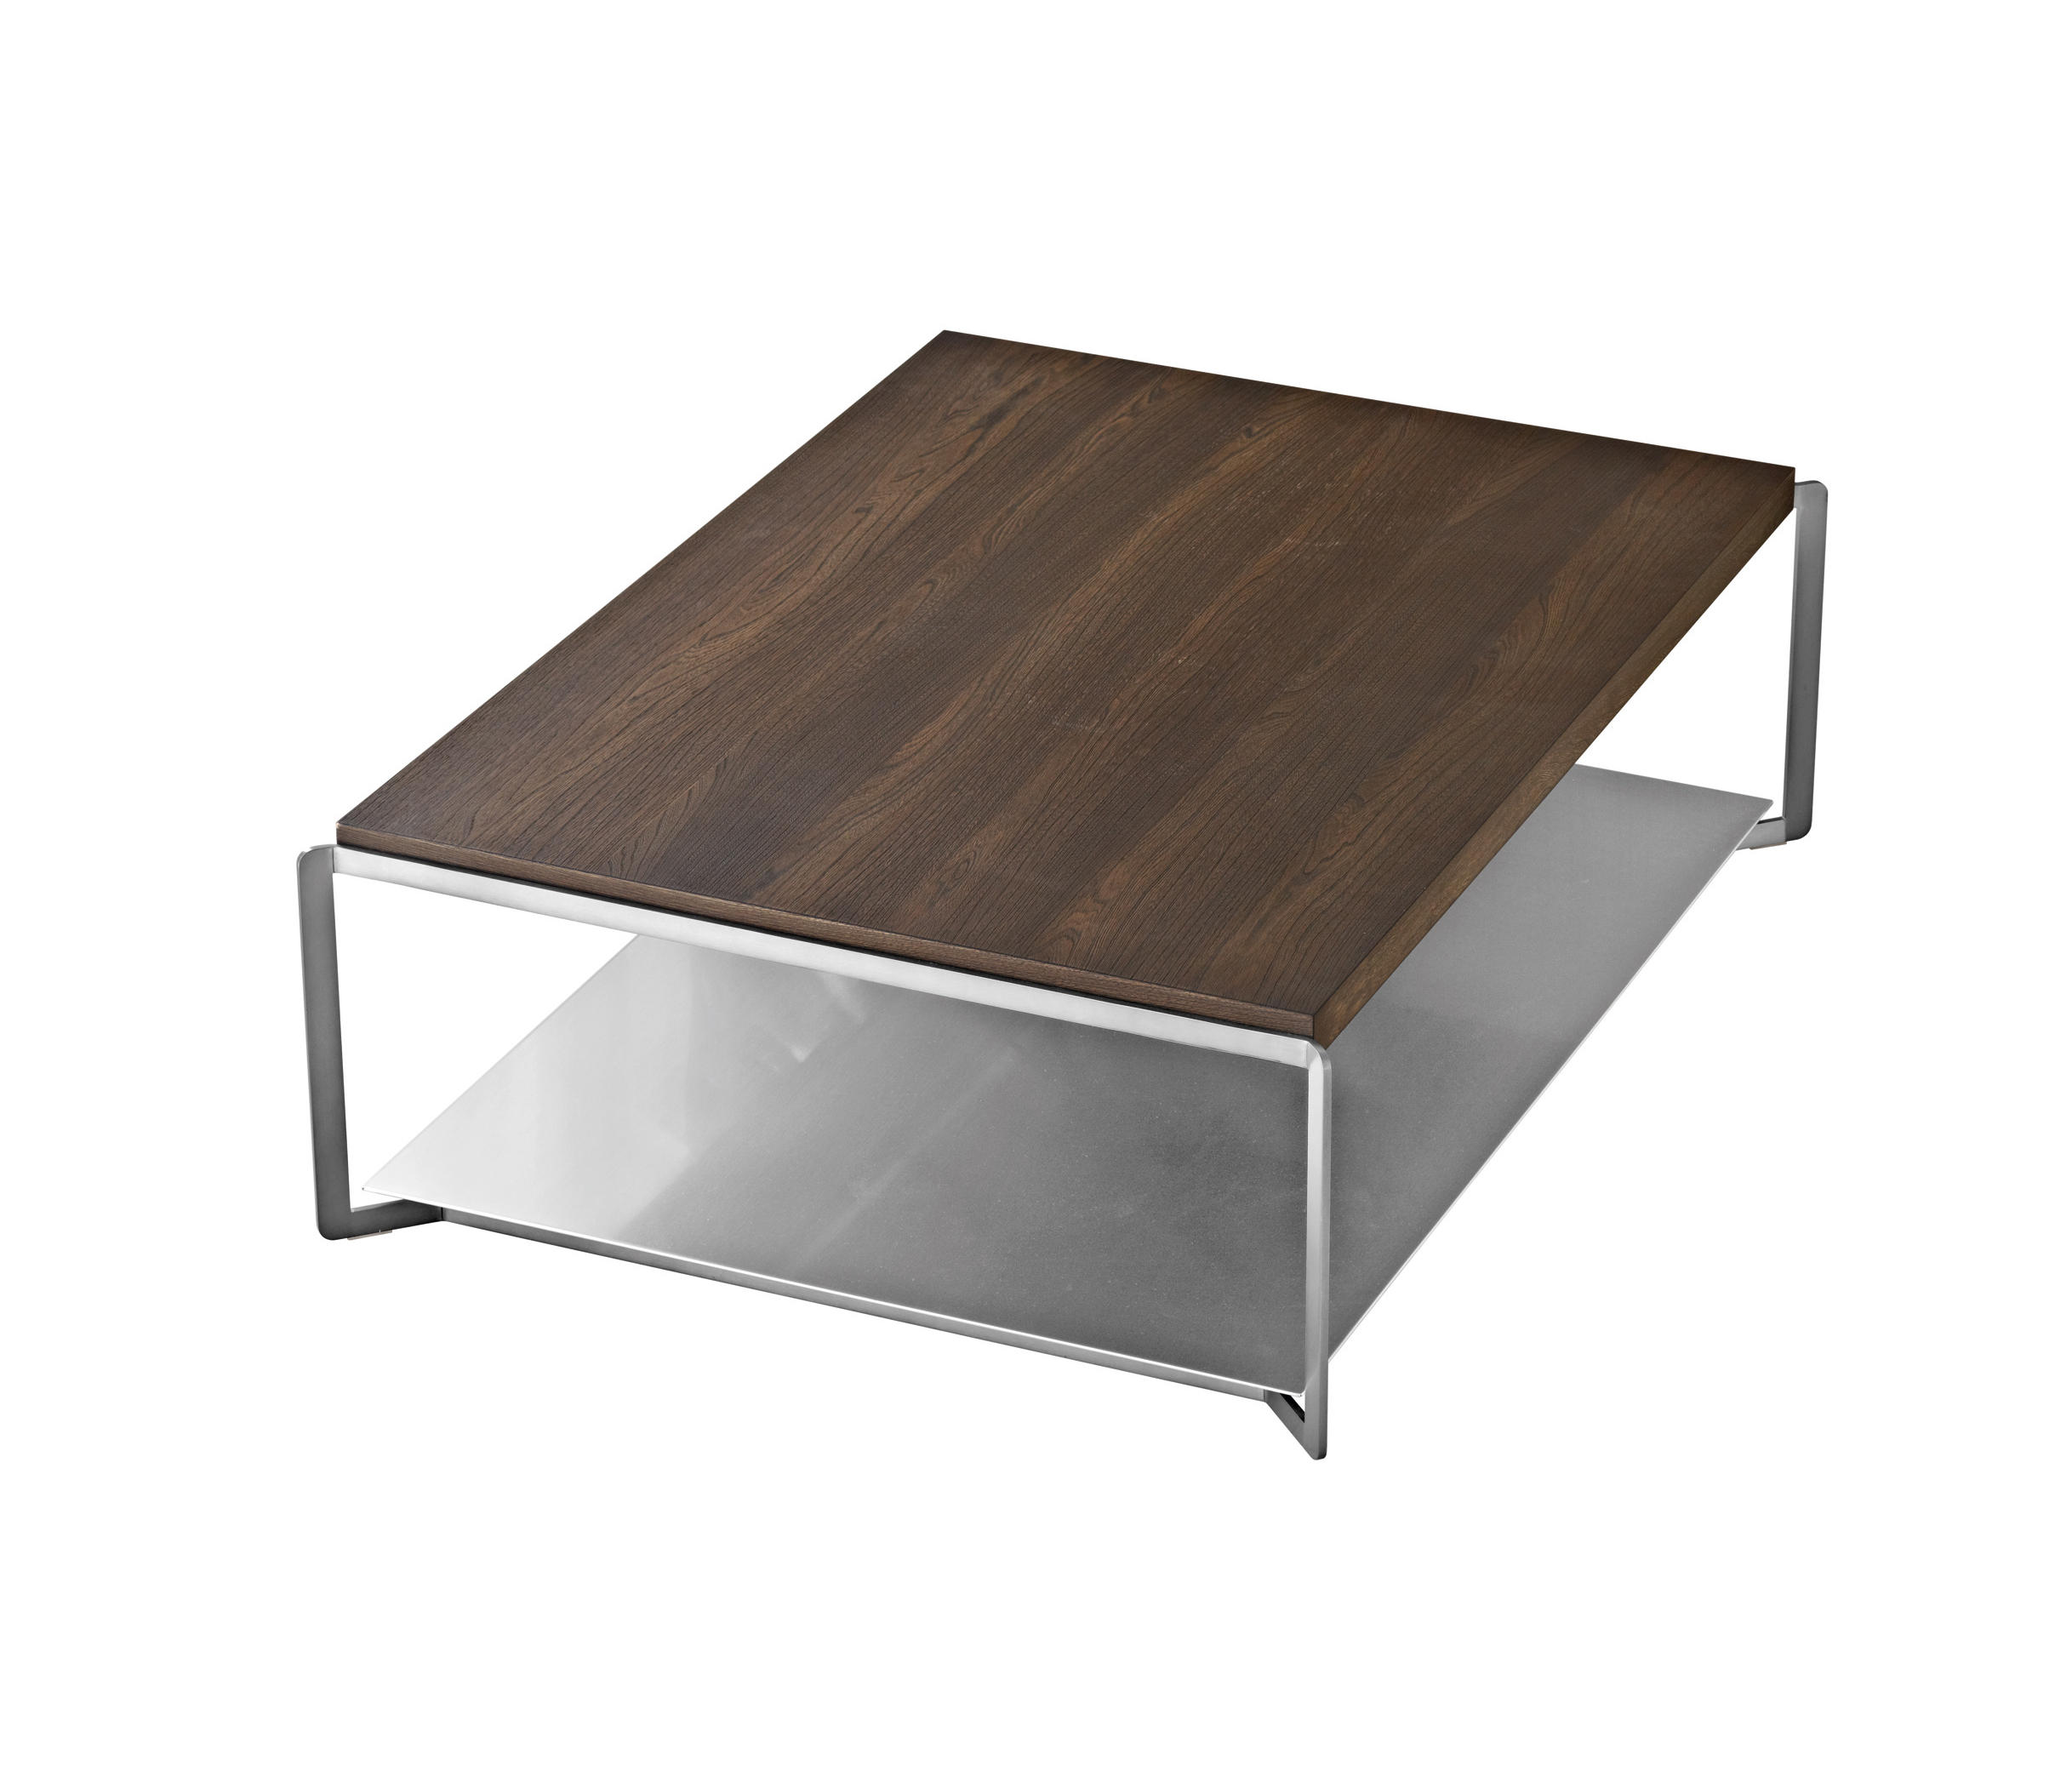 portfolio small table  lounge tables from molteni  c  architonic - portfolio small table by molteni  c  lounge tables